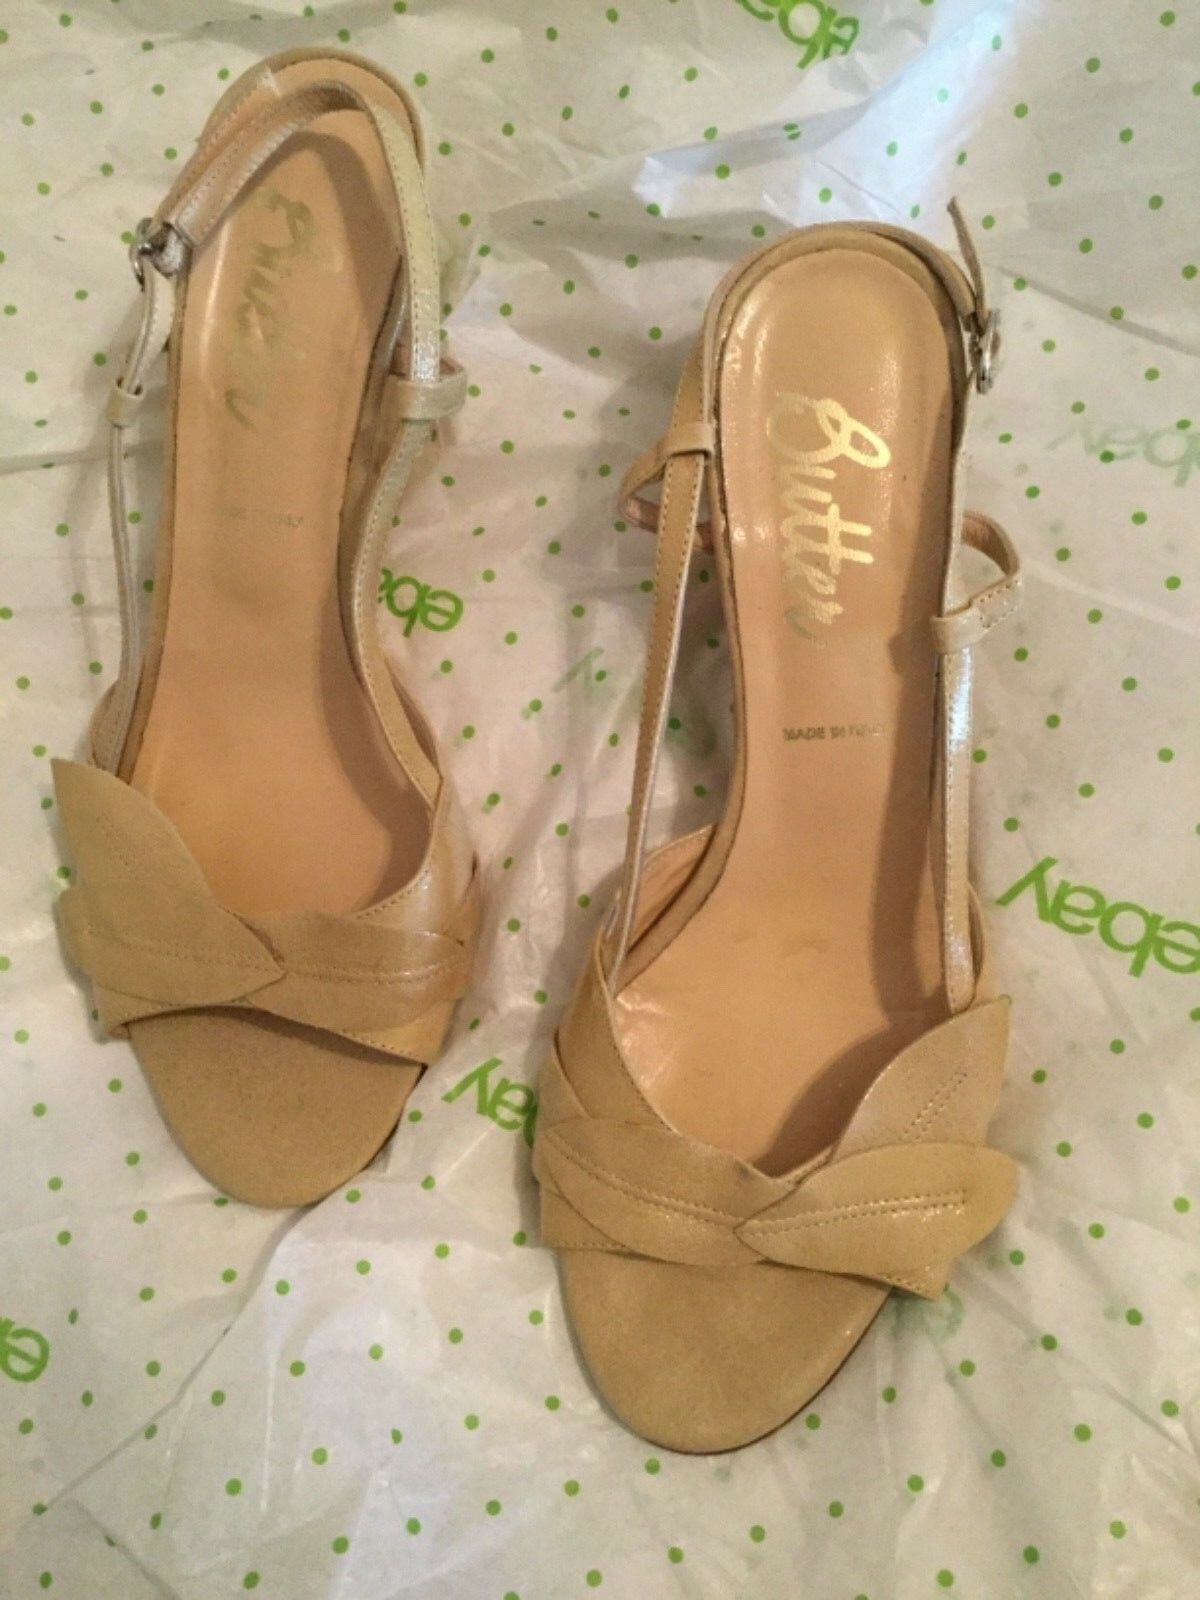 Butter (Made in ) Beige Patent Leather Wedge Sandals - 10